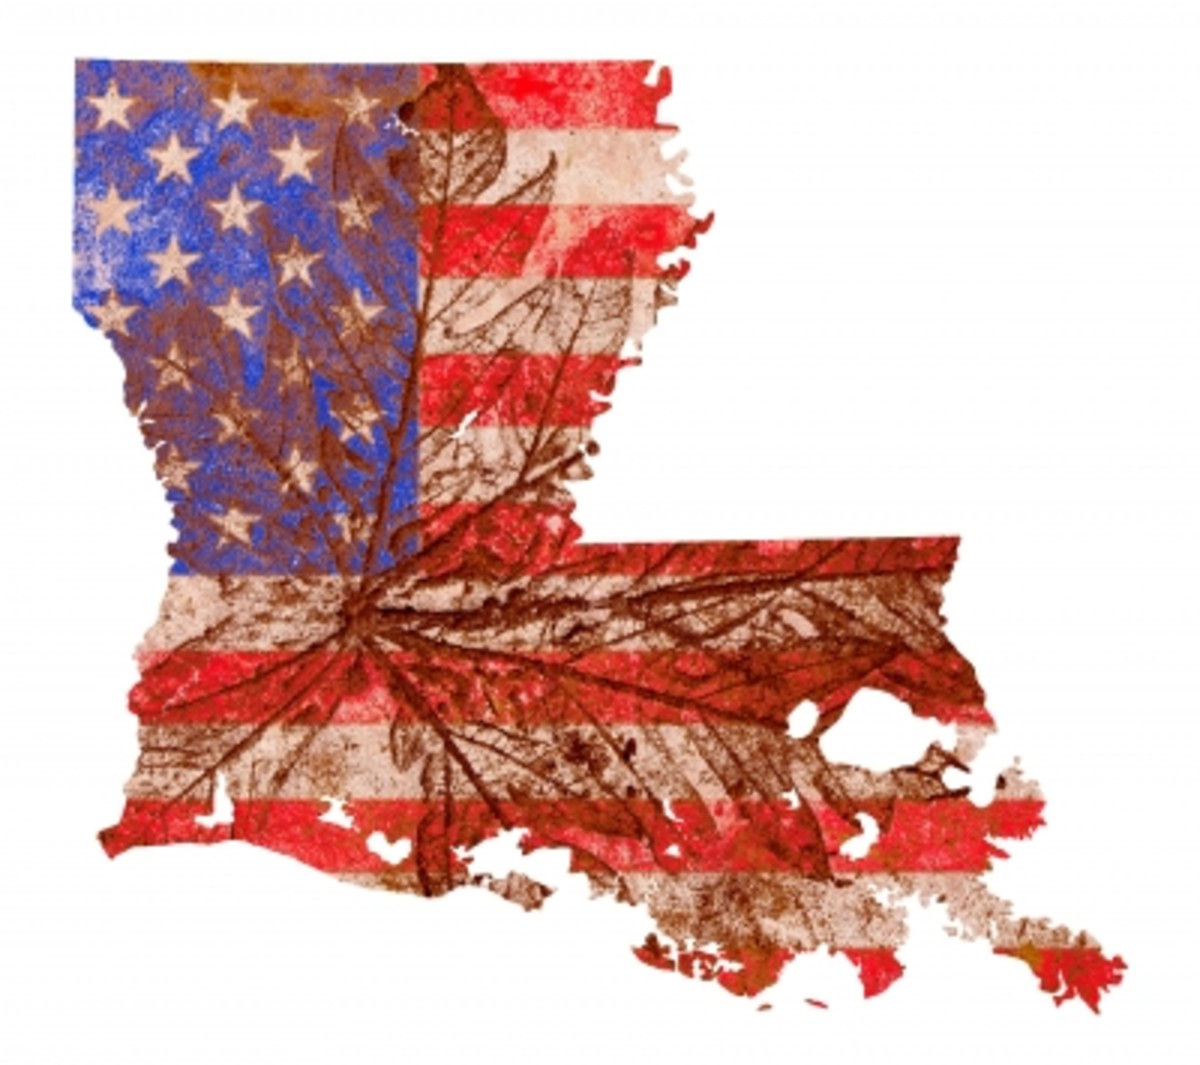 Louisiana boasts a mixed and vibrant population.